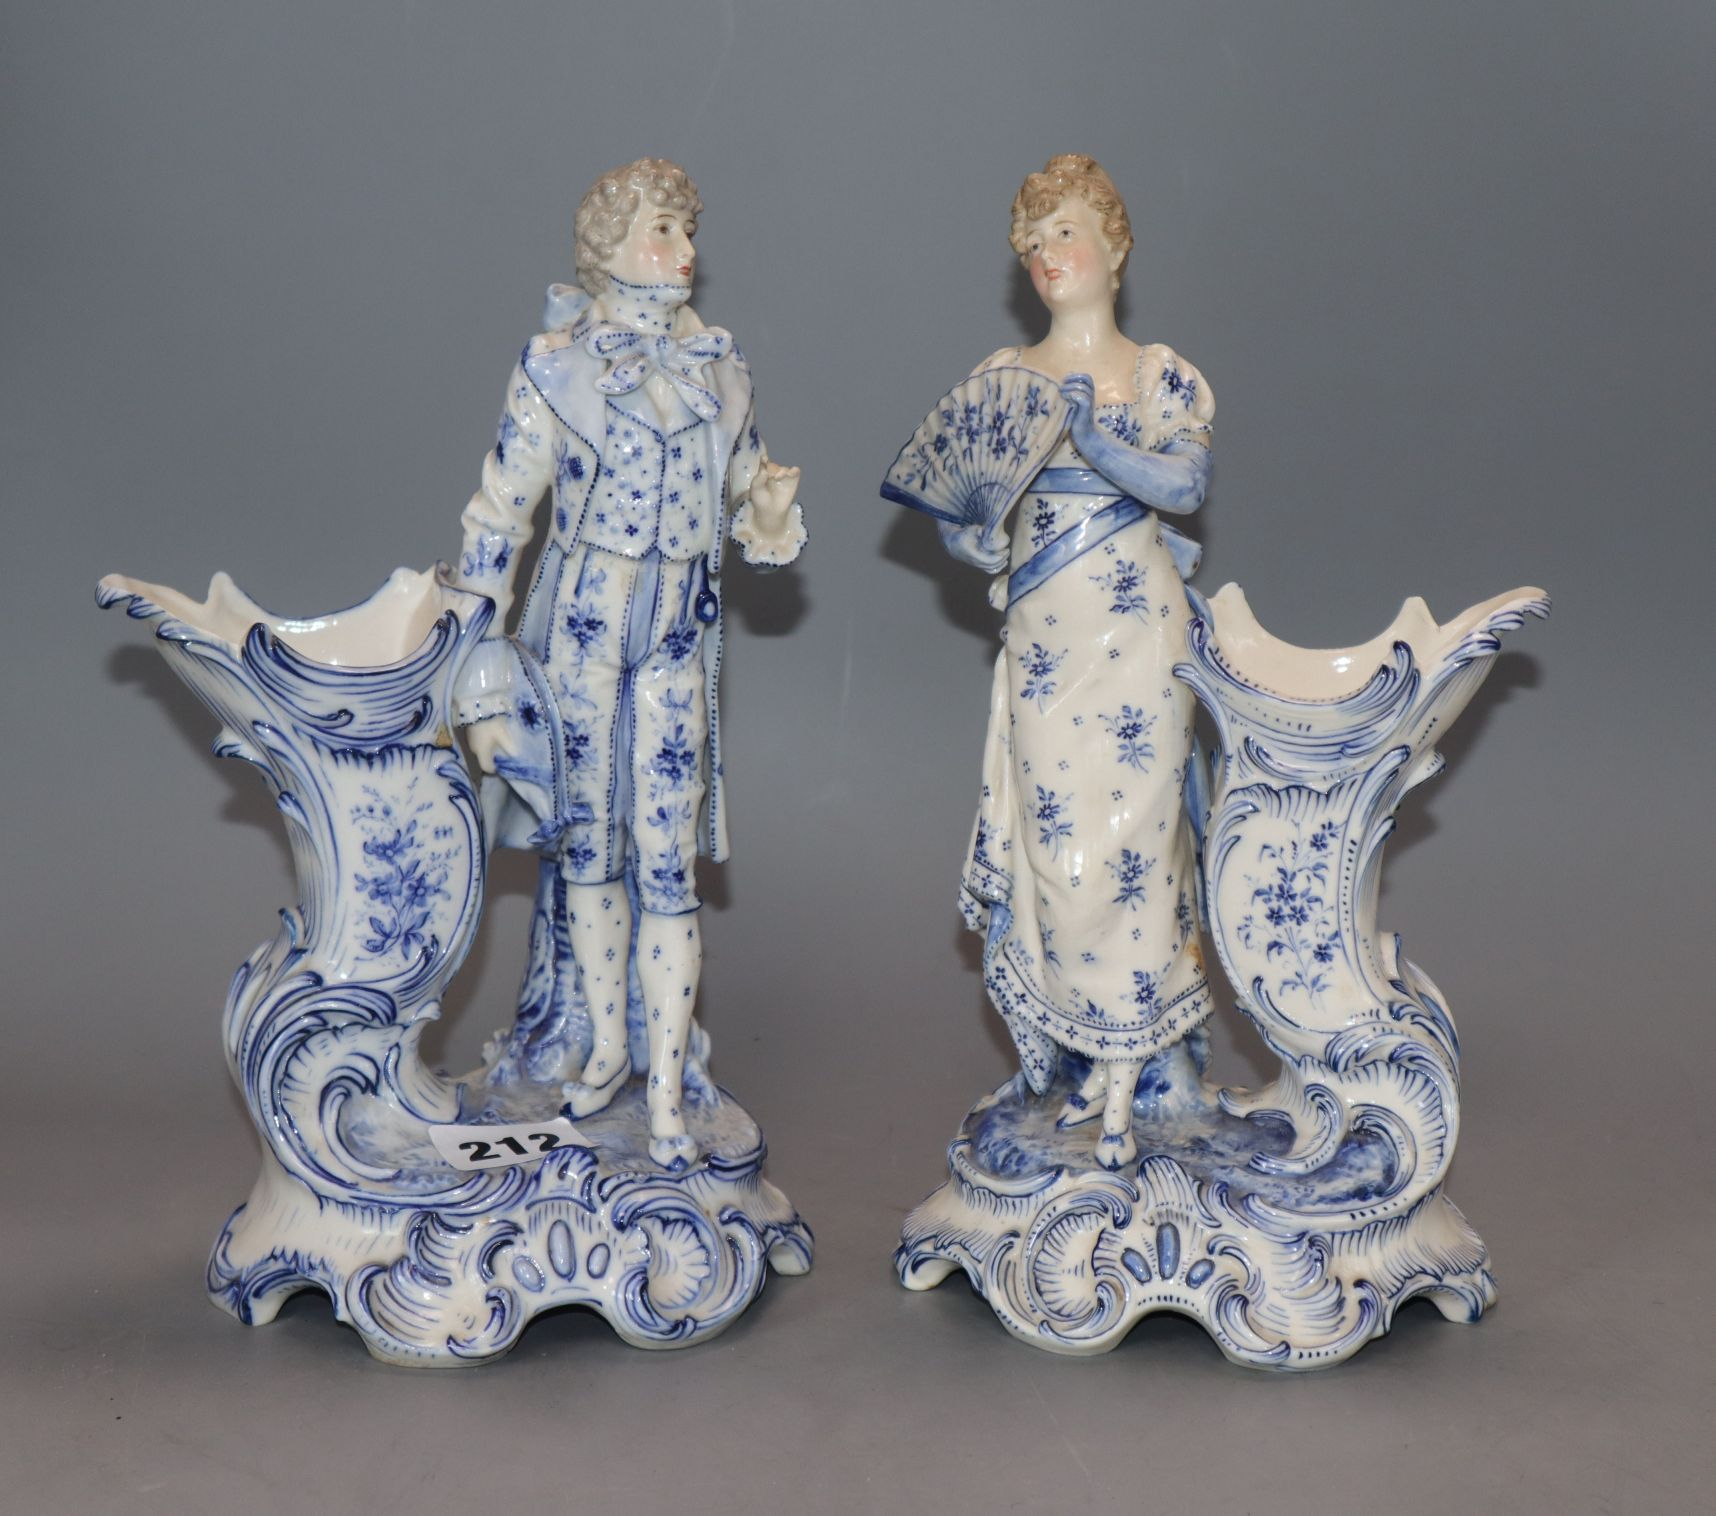 Lot 212 - A pair of Continental porcelain figural spill vases